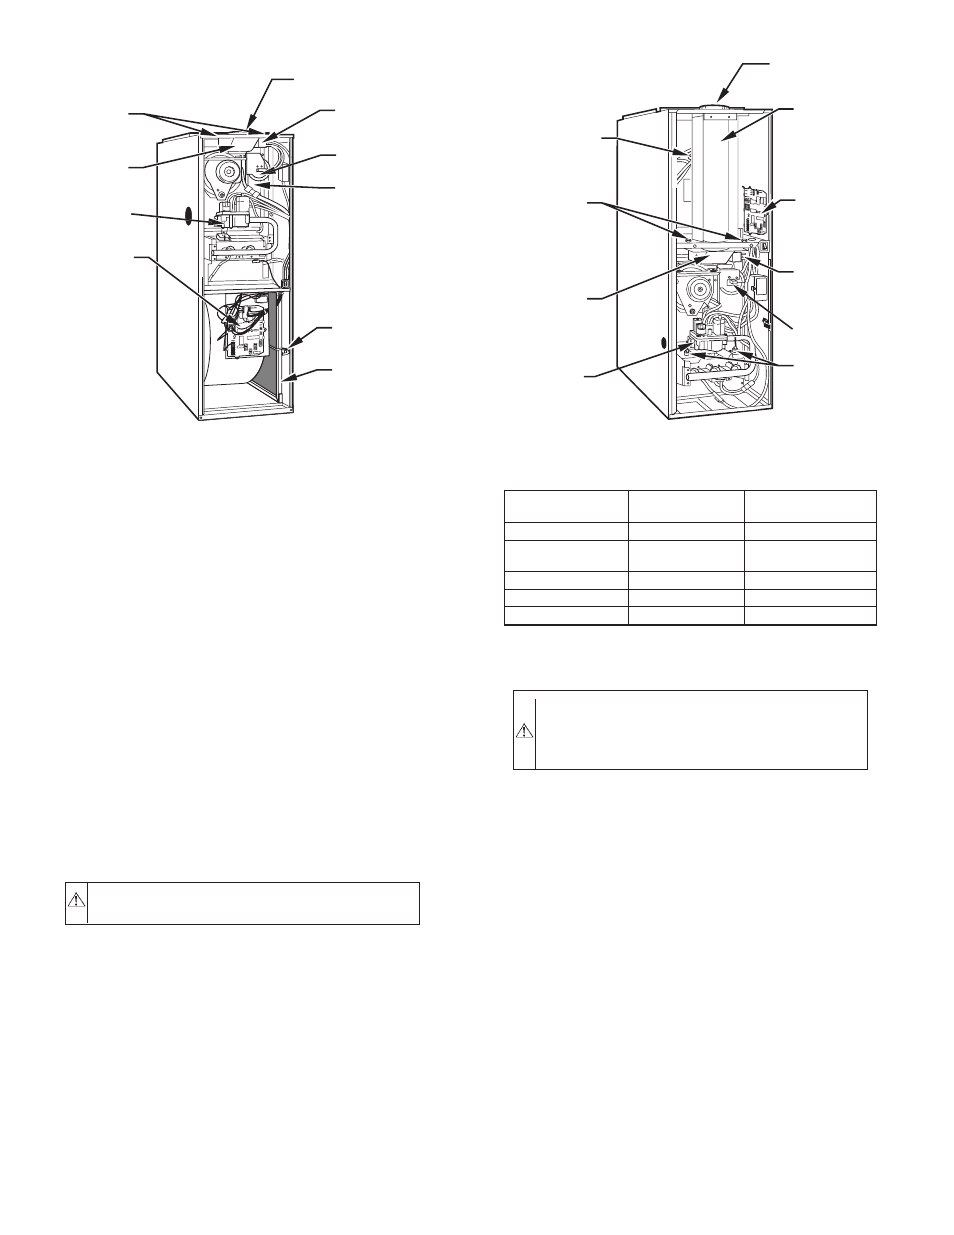 Bryant GAS-FIRED INDUCED-COMBUSTION FURNACES 373LAV User Manual | Page 4 /  16